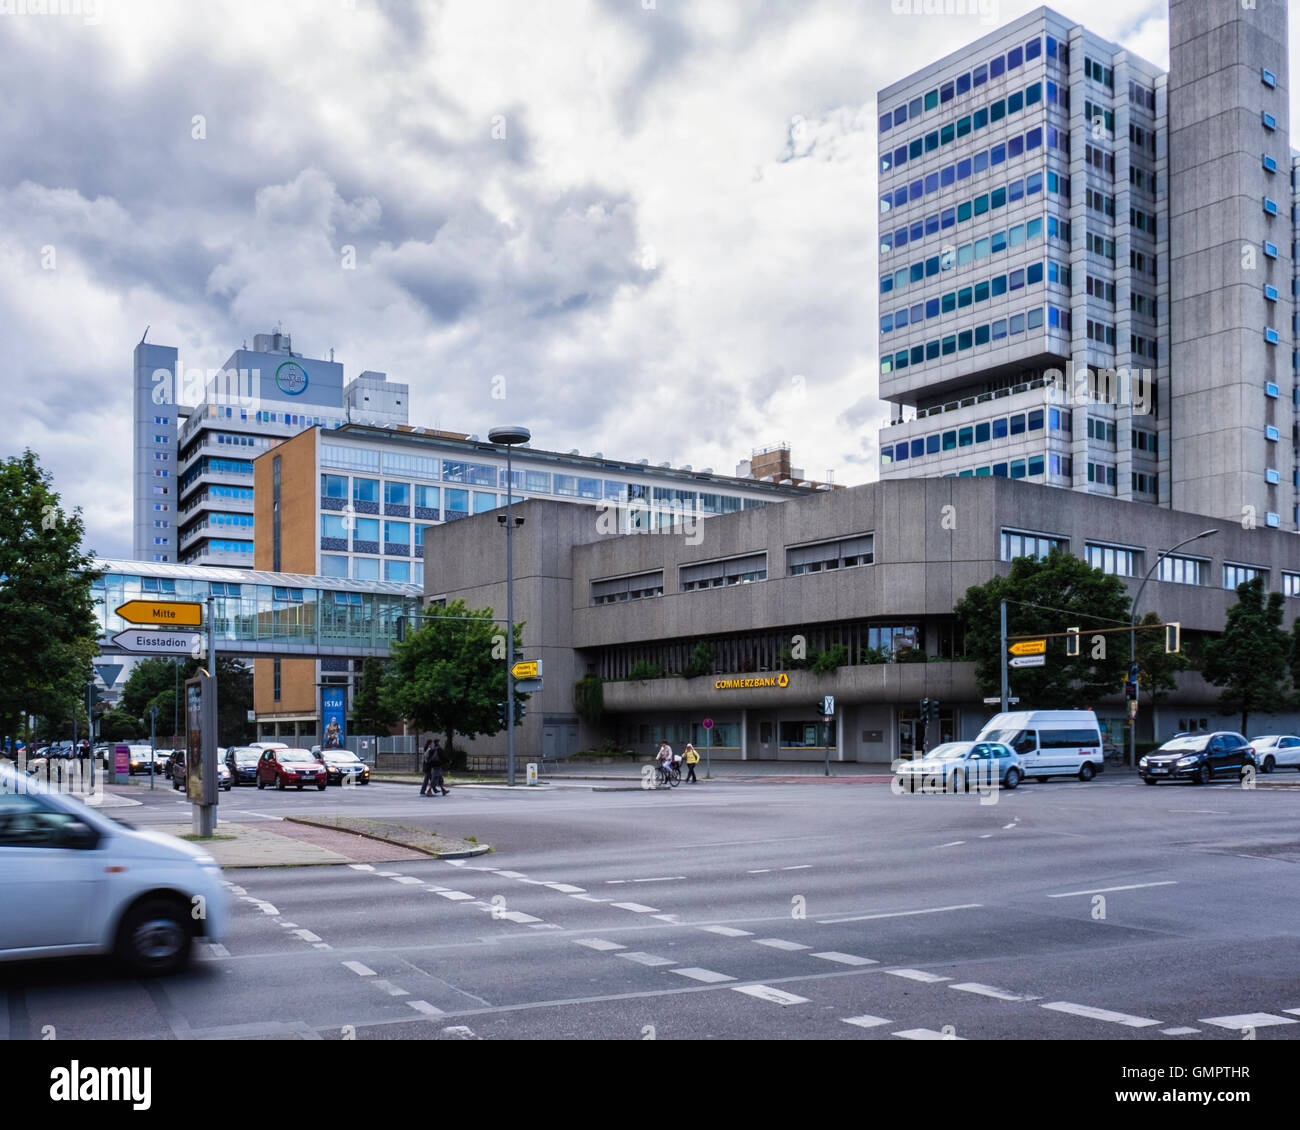 Berlin, Germany. Bayer Pharma AG building exterior. Pharmaceutical company offices and laboratories. - Stock Image